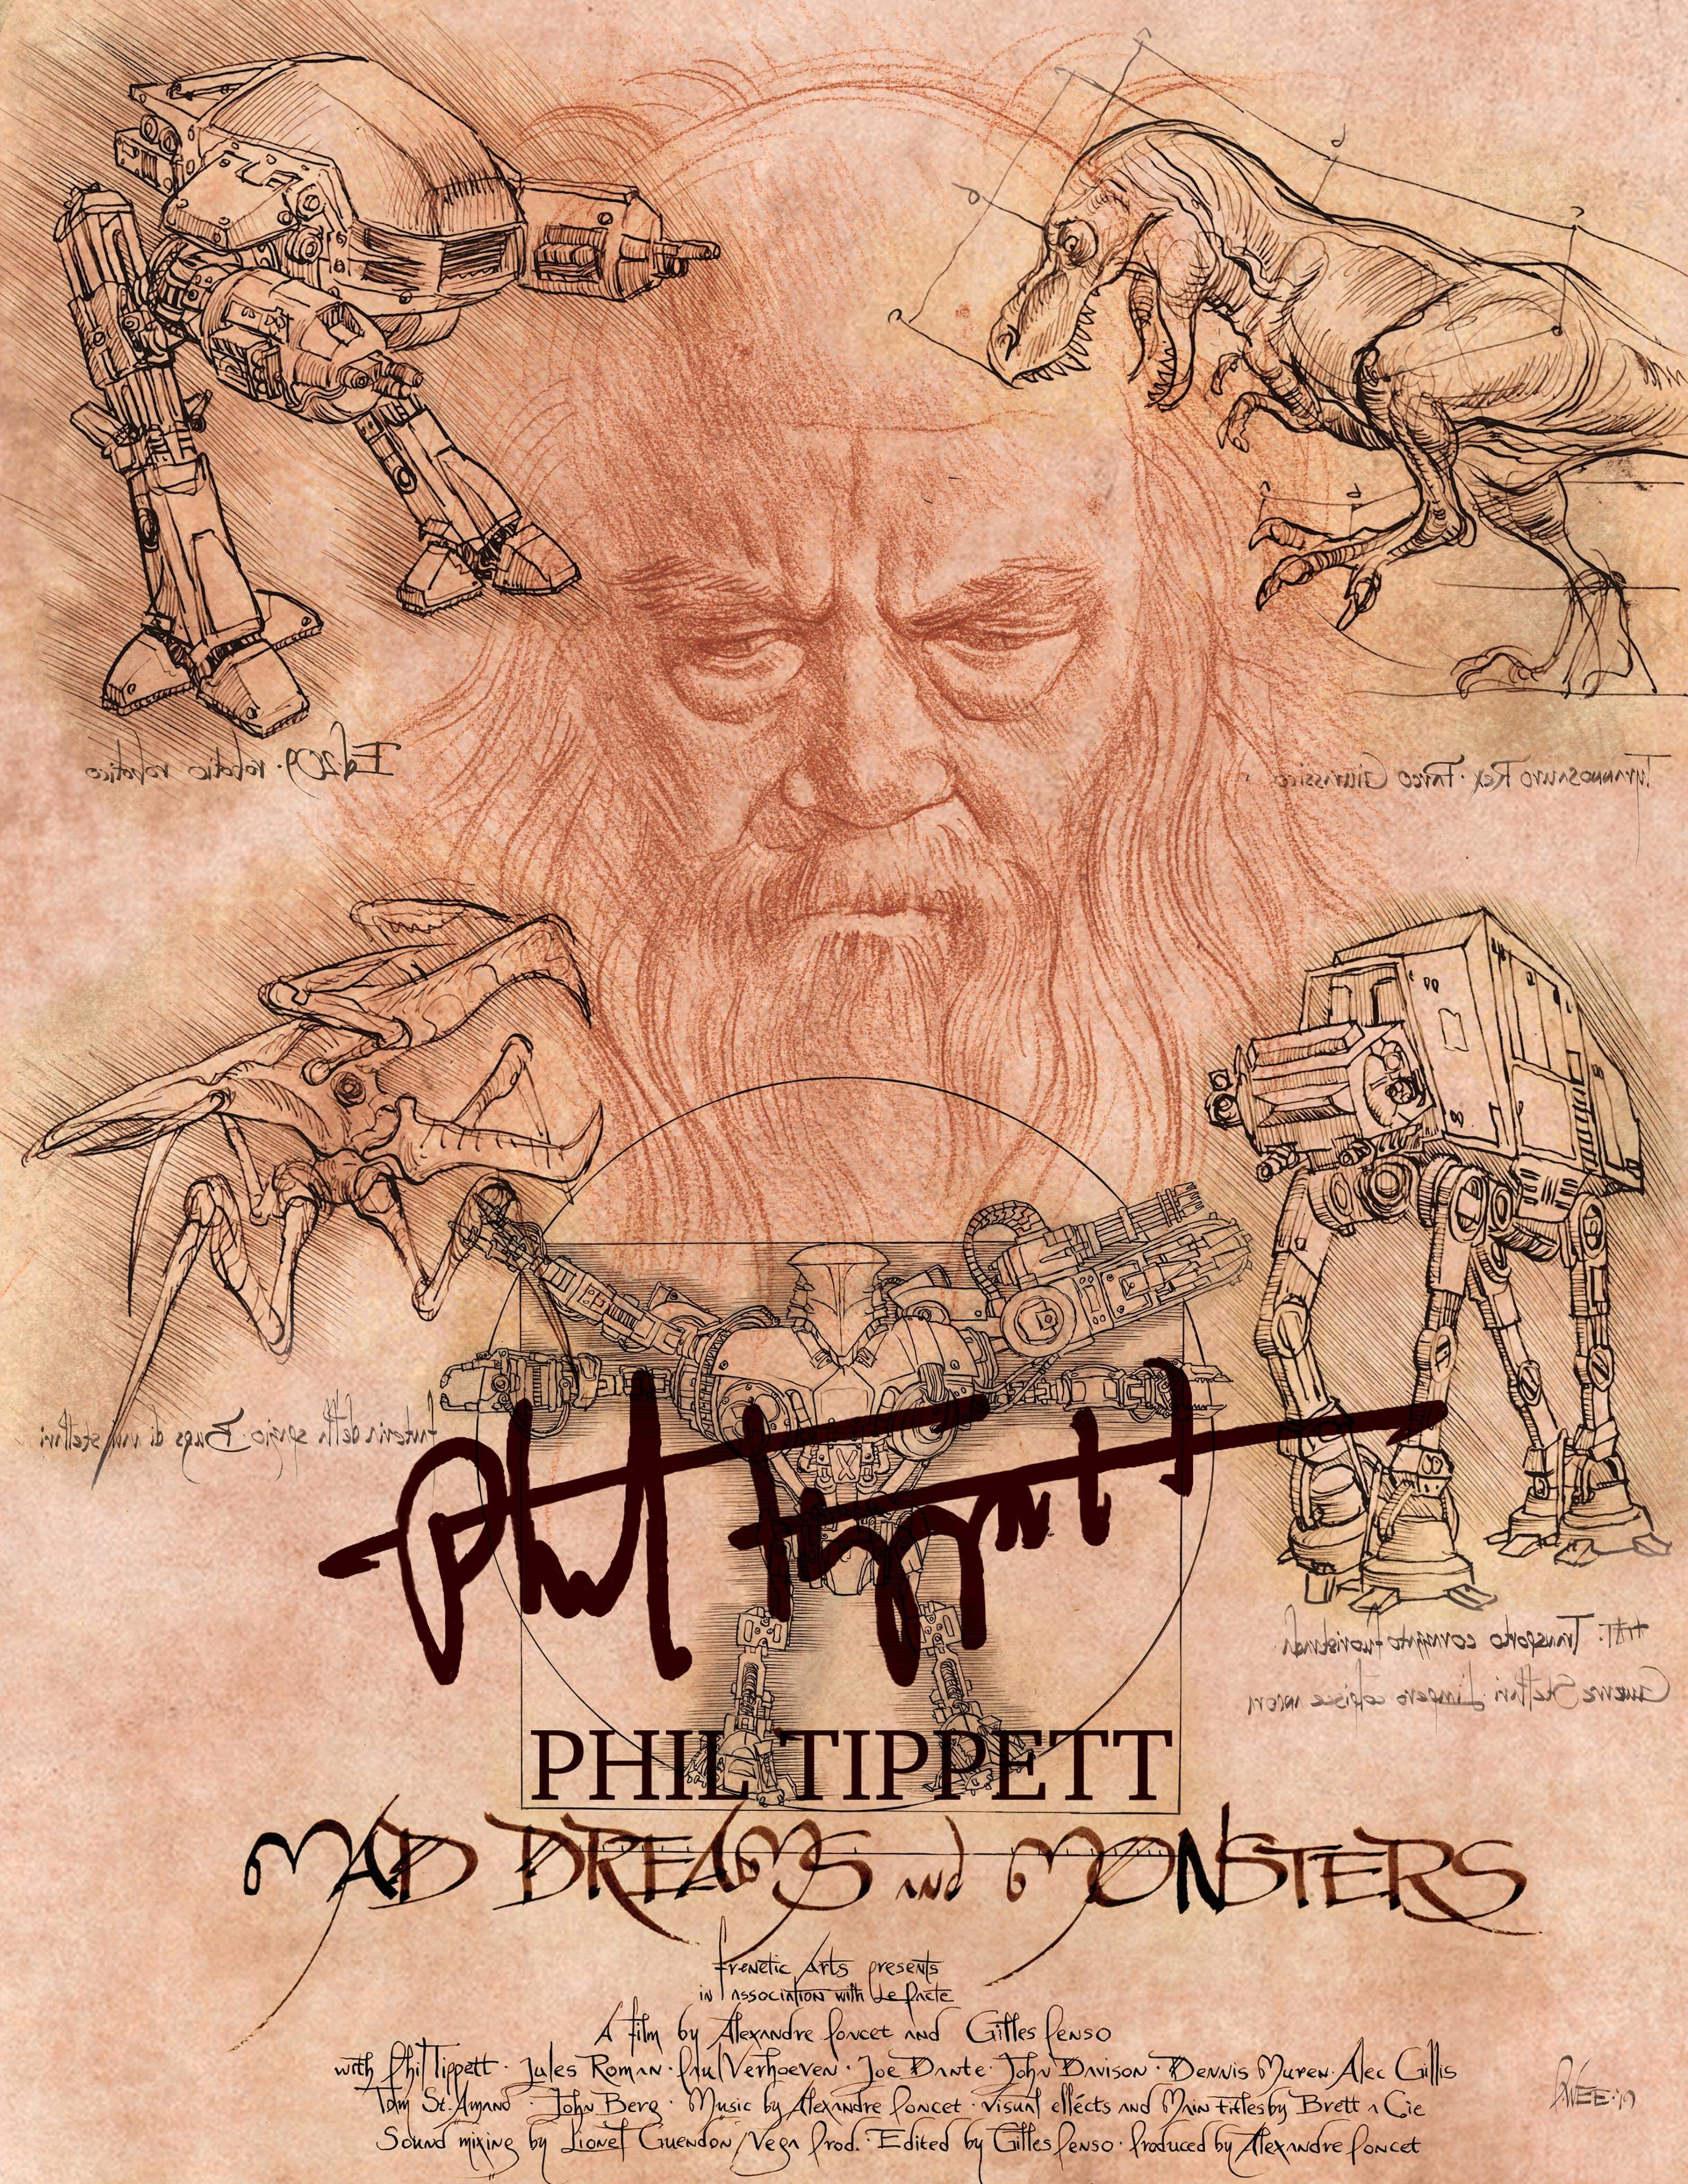 Phil Tippett: Mad Dreams & Monsters